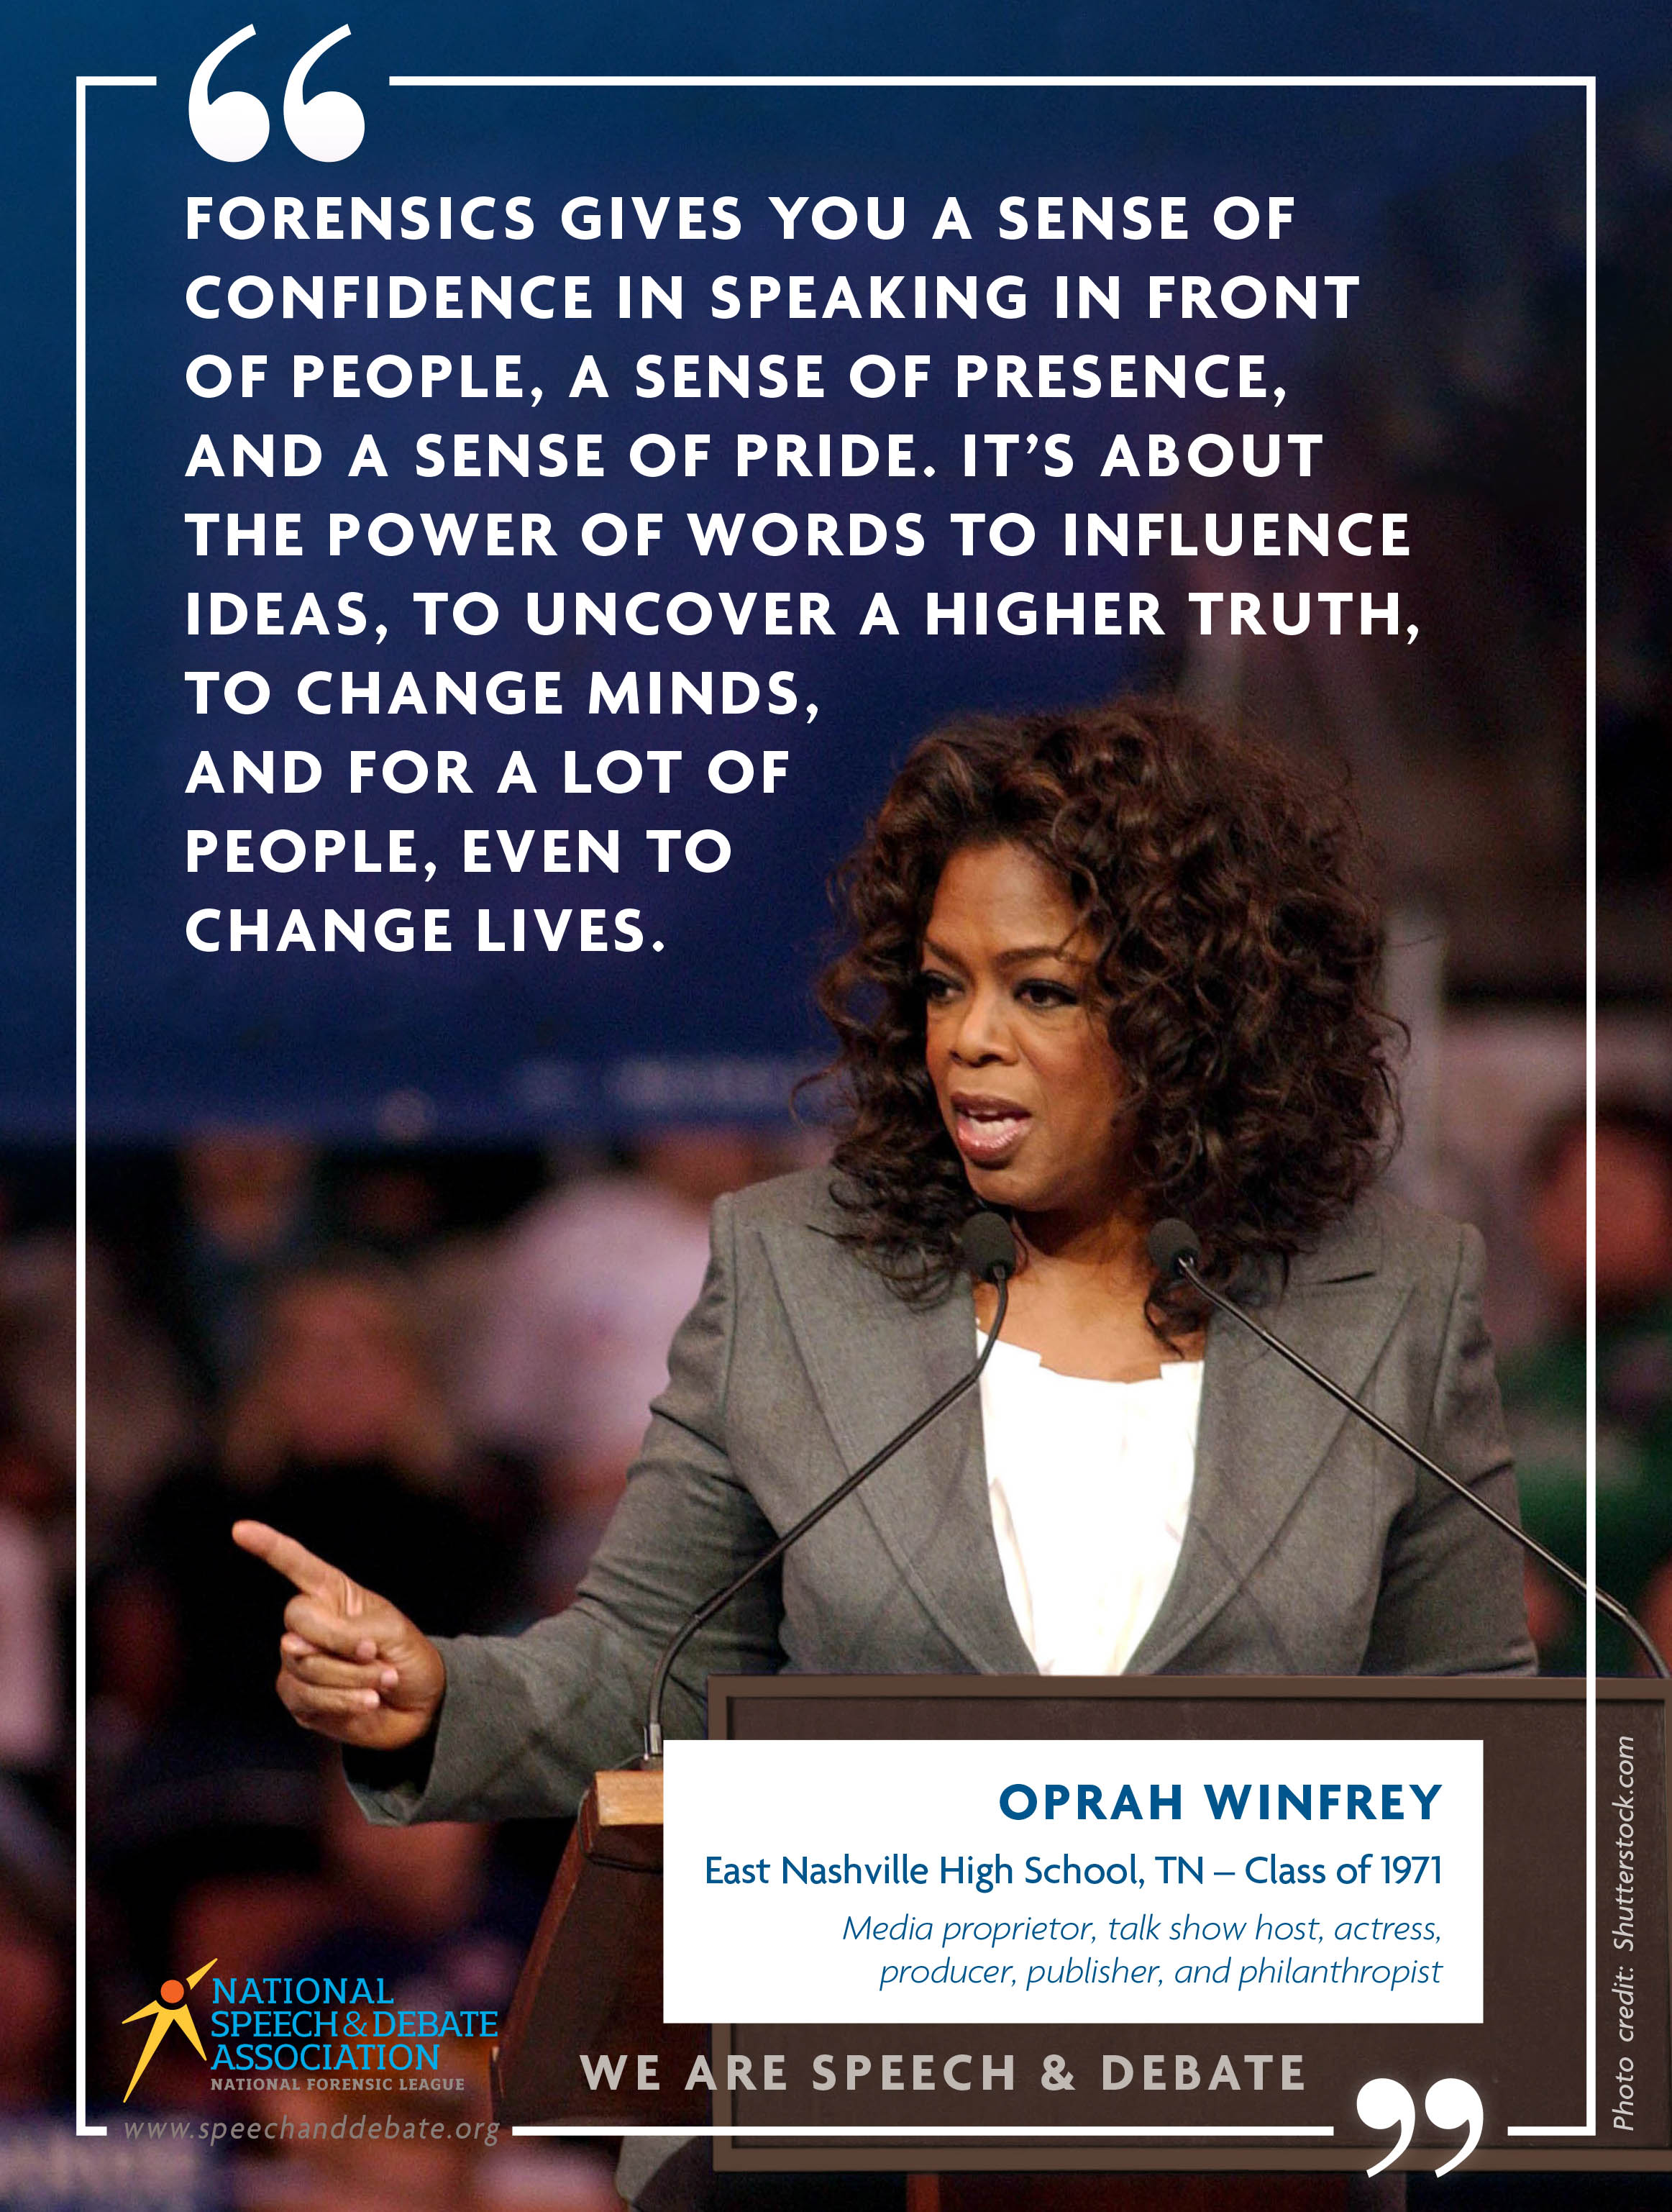 """FORENSICS GIVES YOU A SENSE OF CONFIDENCE IN SPEAKING IN FRONT OF PEOPLE, A SENSE OF PRESENCE, AND A SENSE OF PRIDE. IT'S ABOUT THE POWER OF WORDS TO INFLUENCE IDEAS, TO UNCOVER A HIGHER TRUTH, TO CHANGE MINDS, AND FOR A LOT OF PEOPLE, EVEN TO CHANGE LIVES."" - Oprah Winfrey"